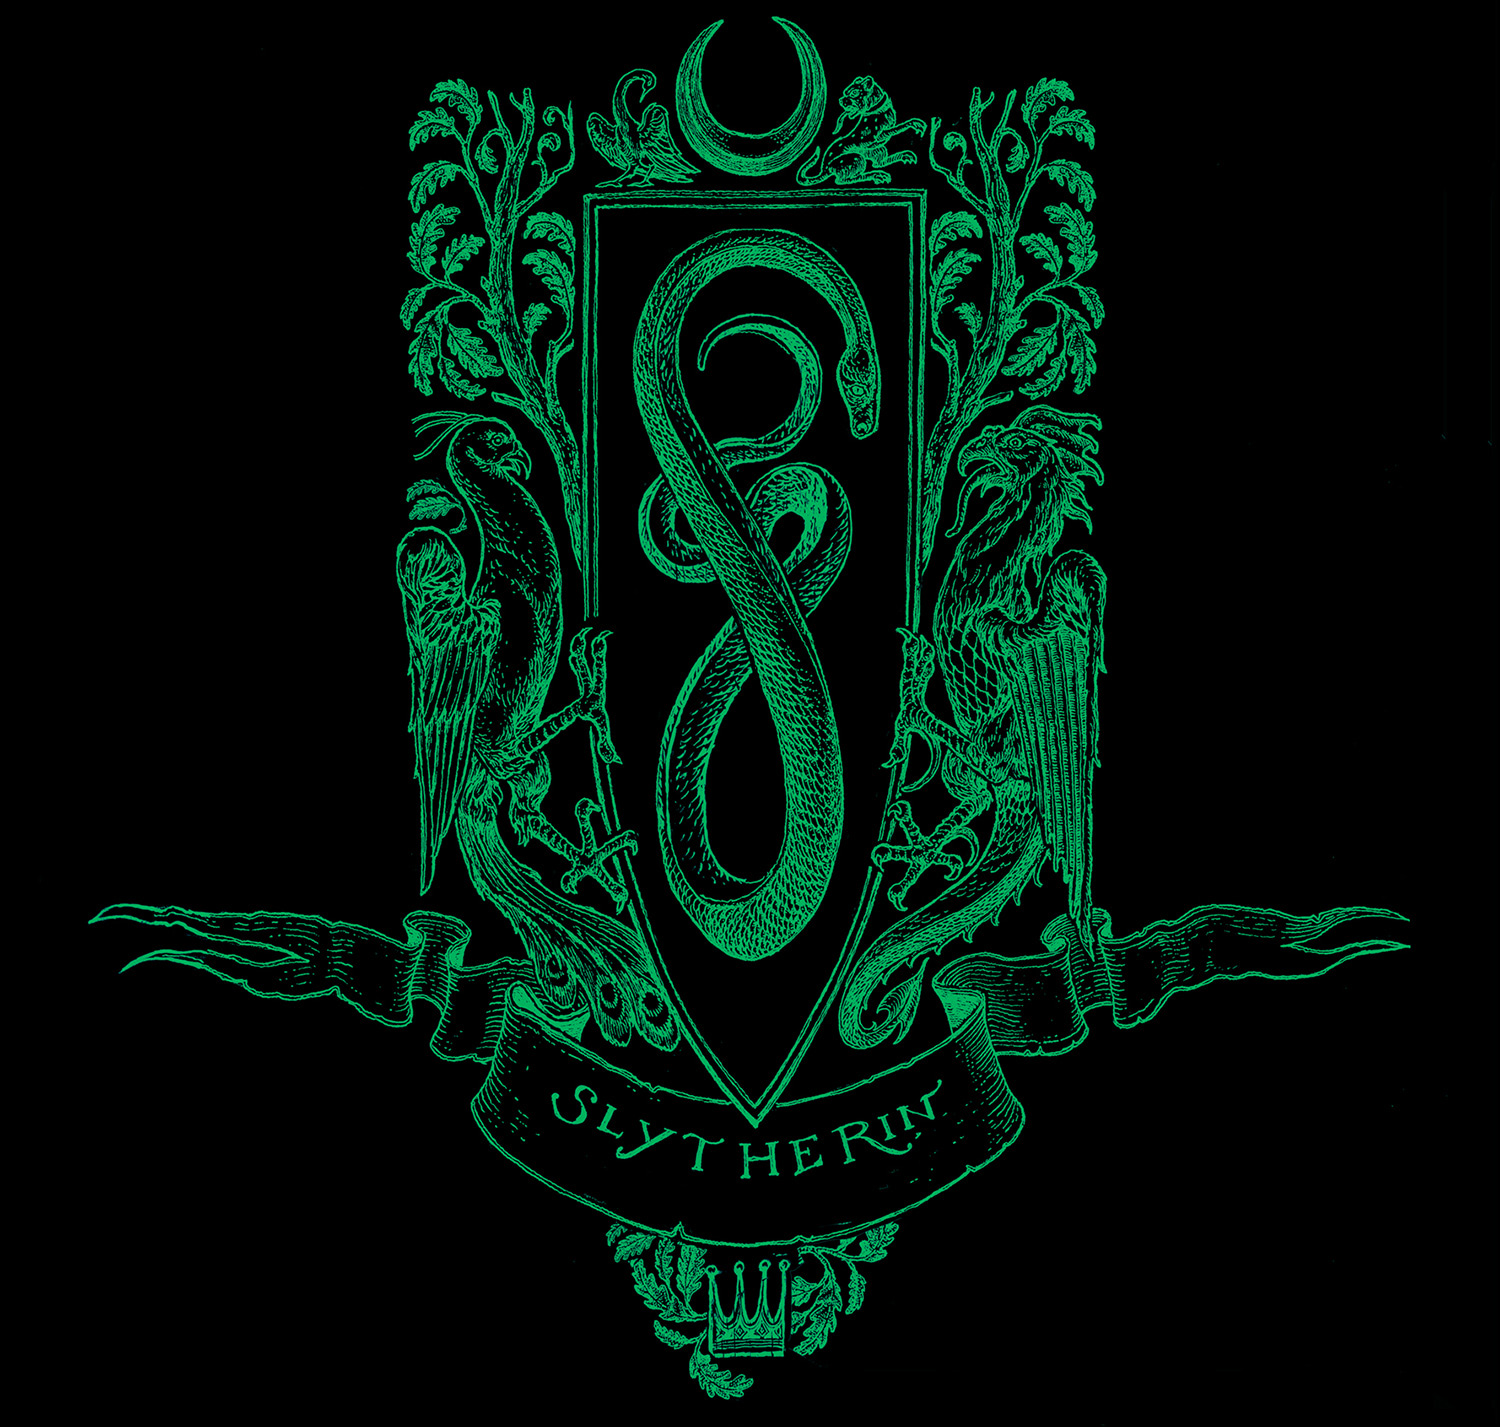 'Philosopher's Stone' house edition crest (Slytherin)